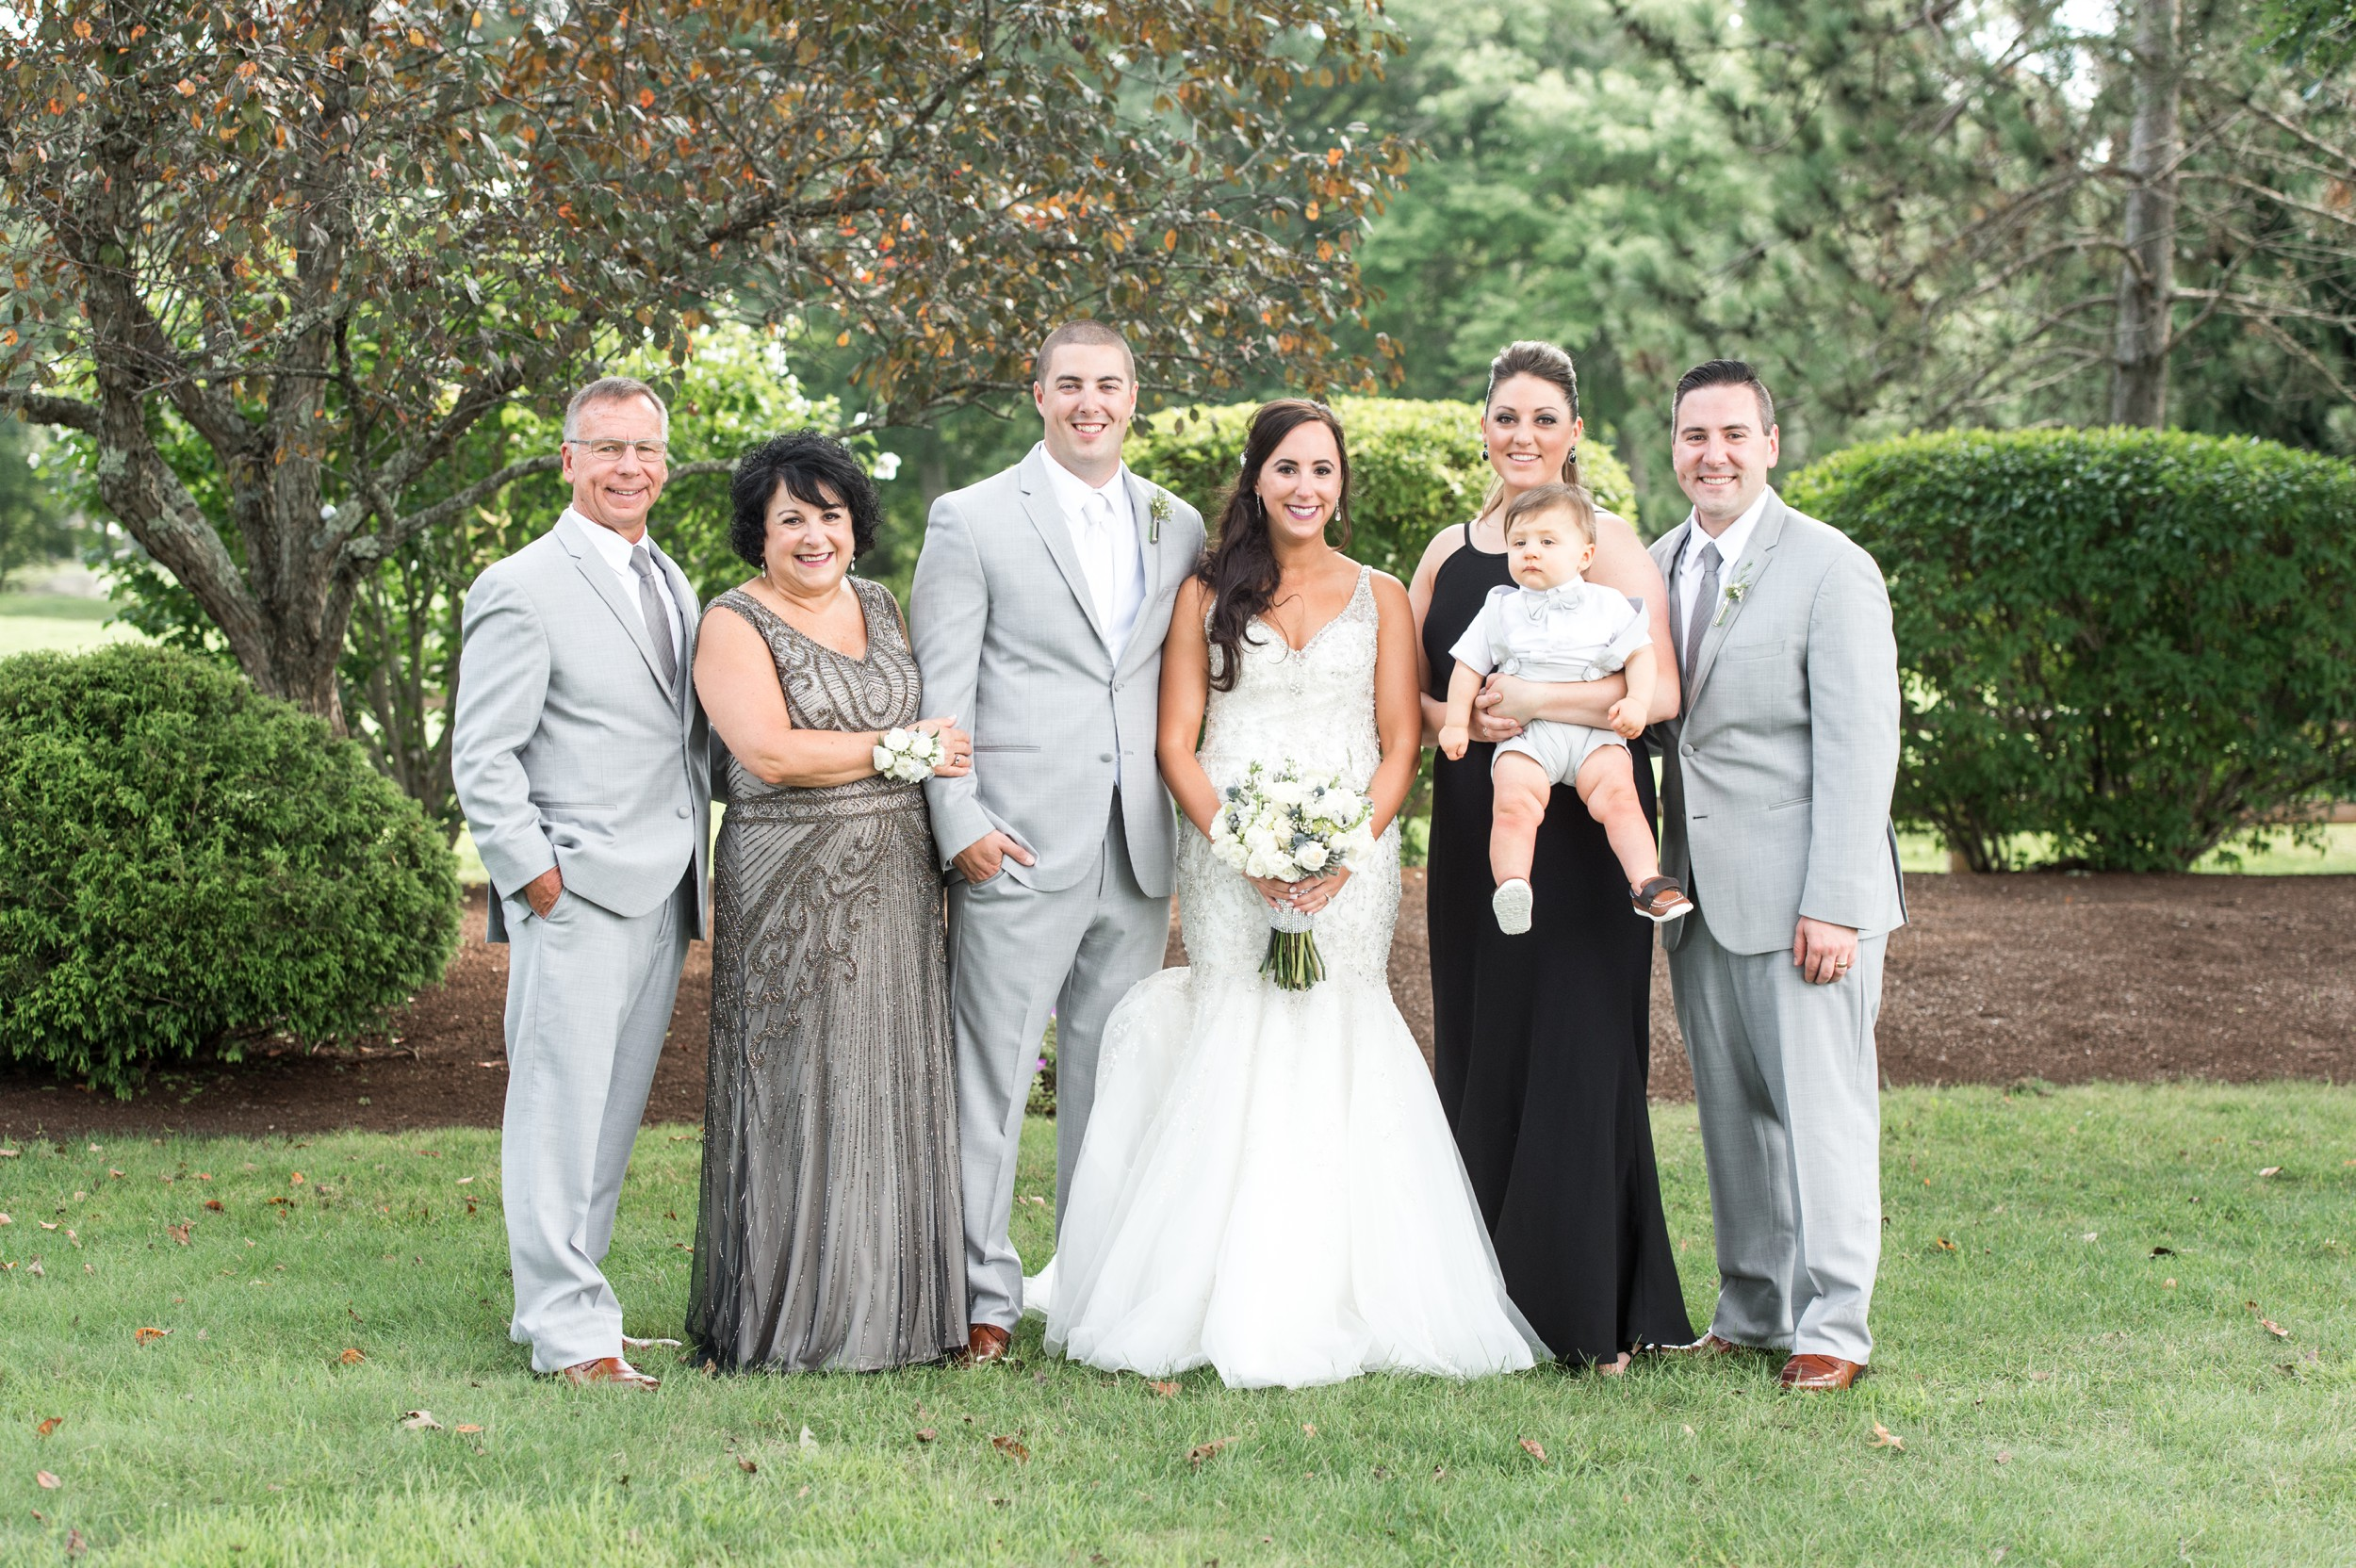 Family Portraits Made Easy The Villa at Ridder Country Club Family Photo with Nephew.jpg